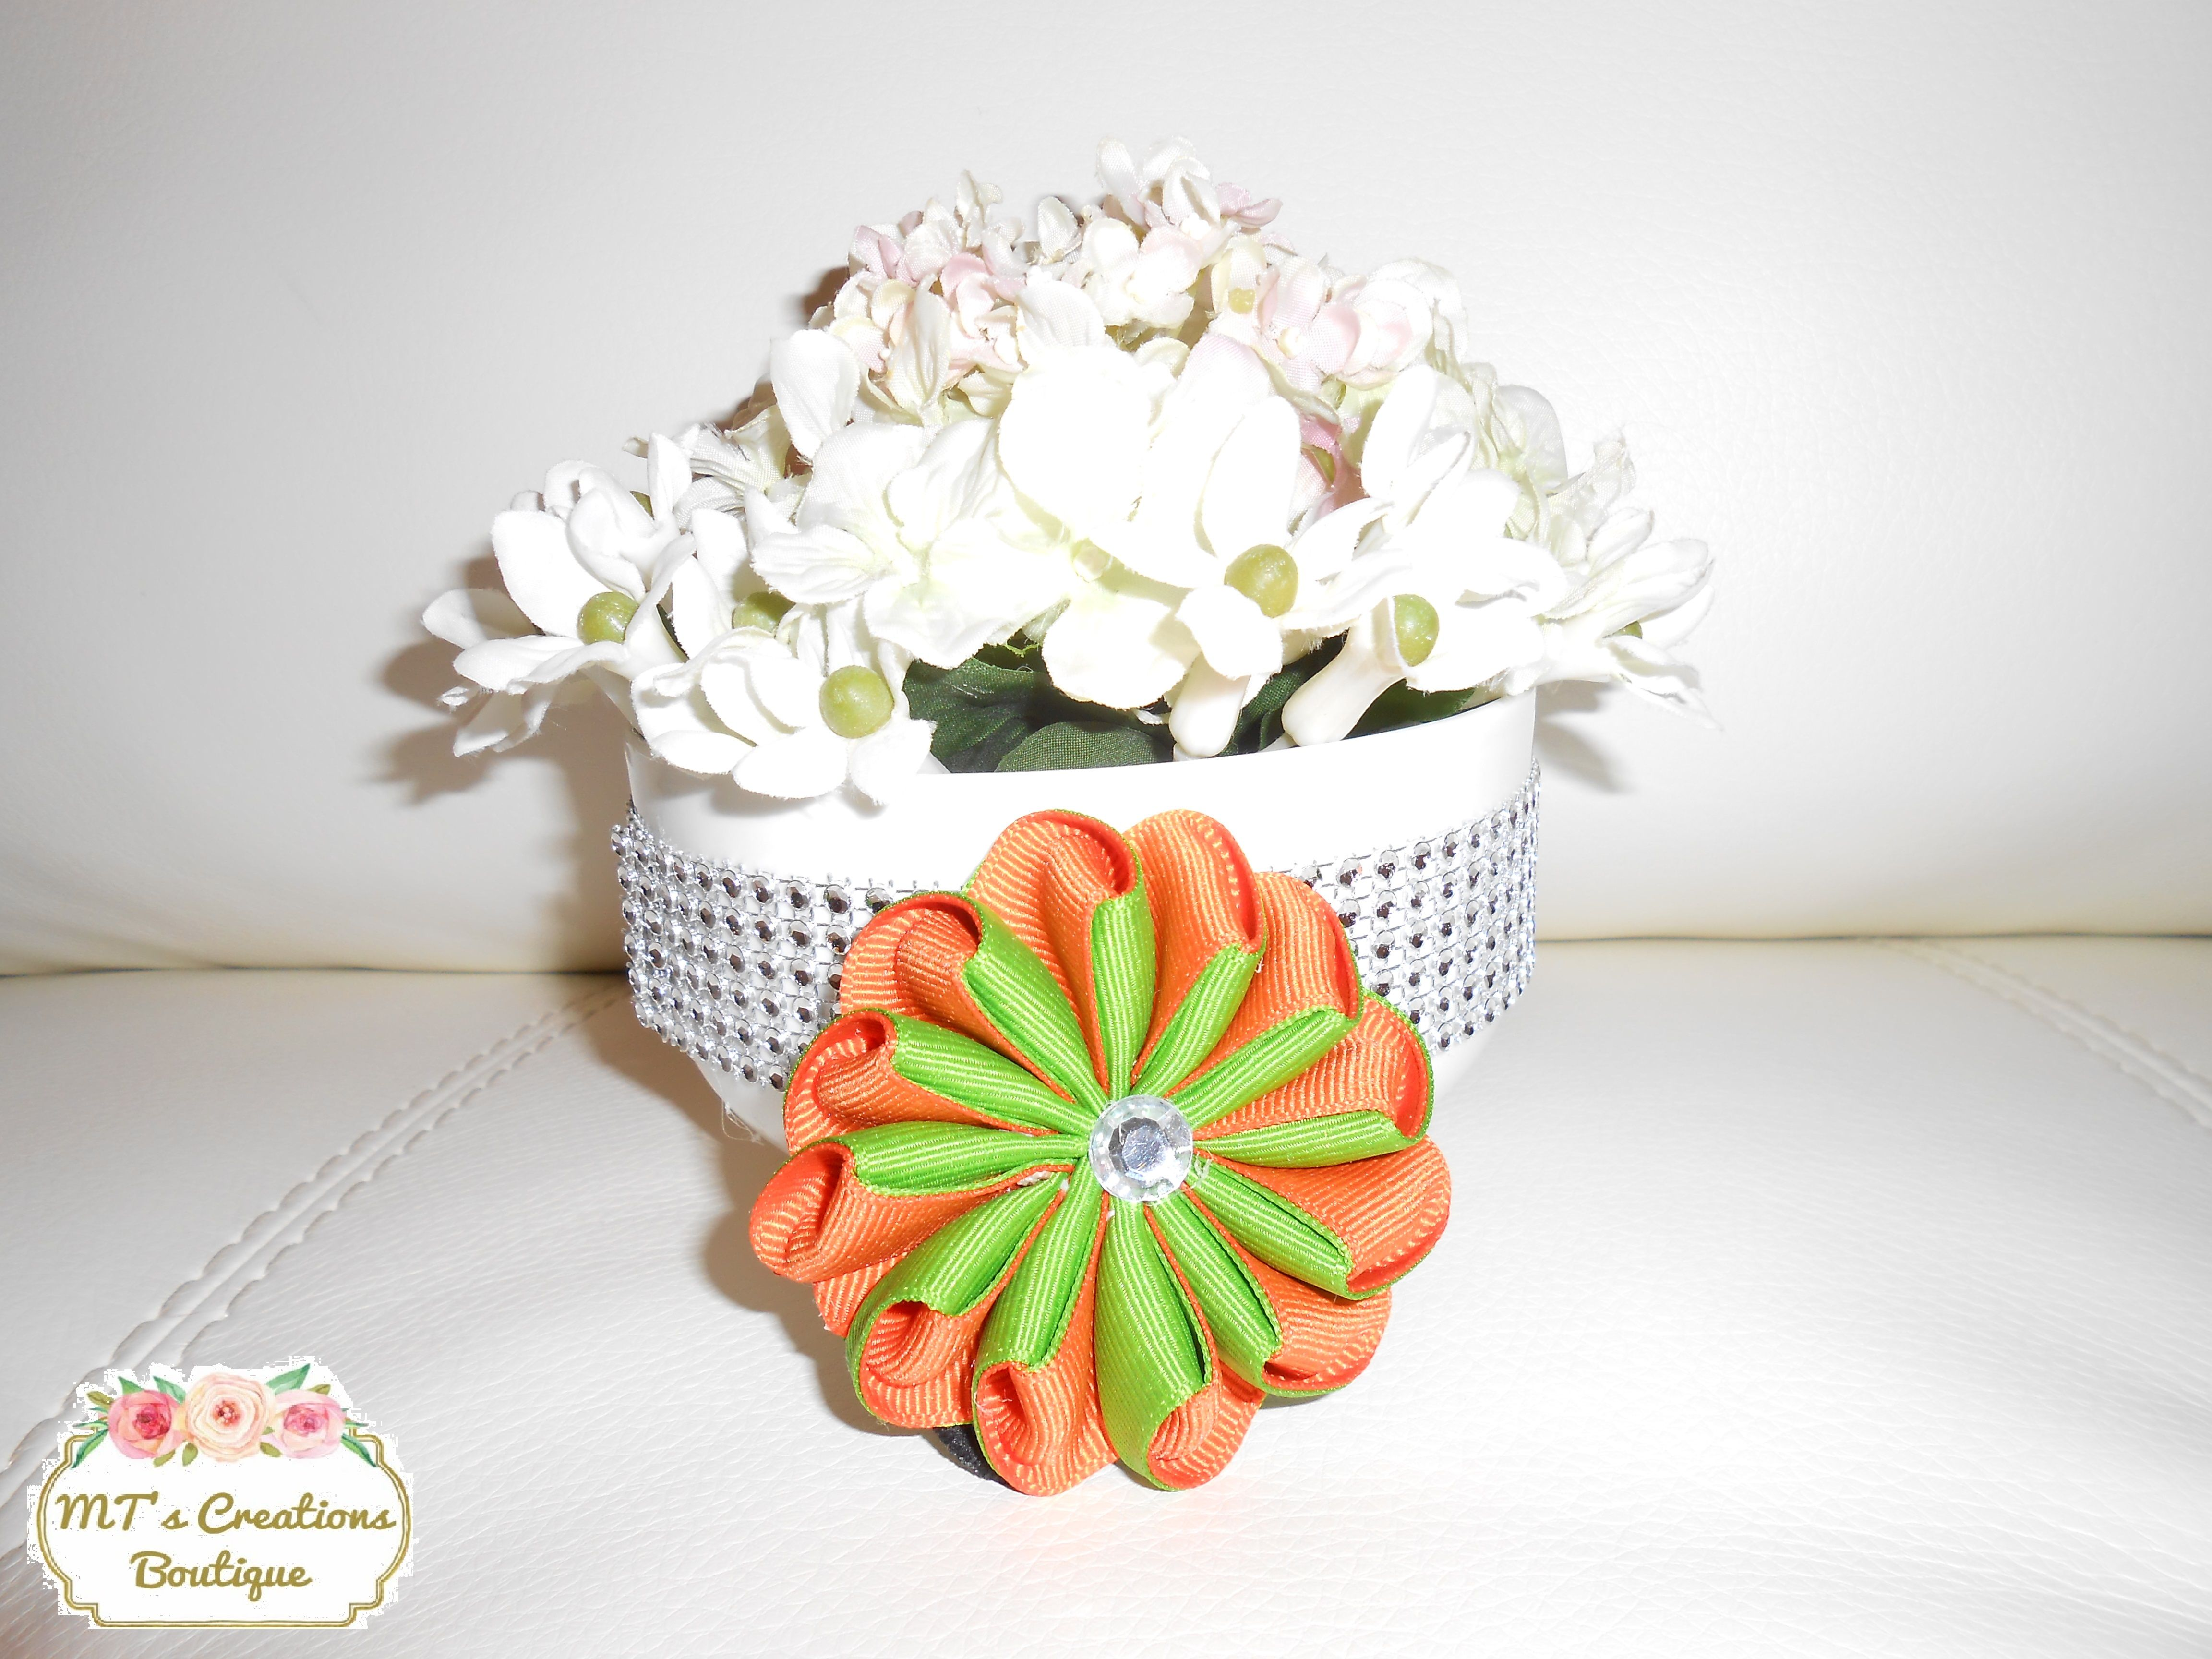 D Bicolor Orange and Green Orgami Flower Hair Tie  Check it out on